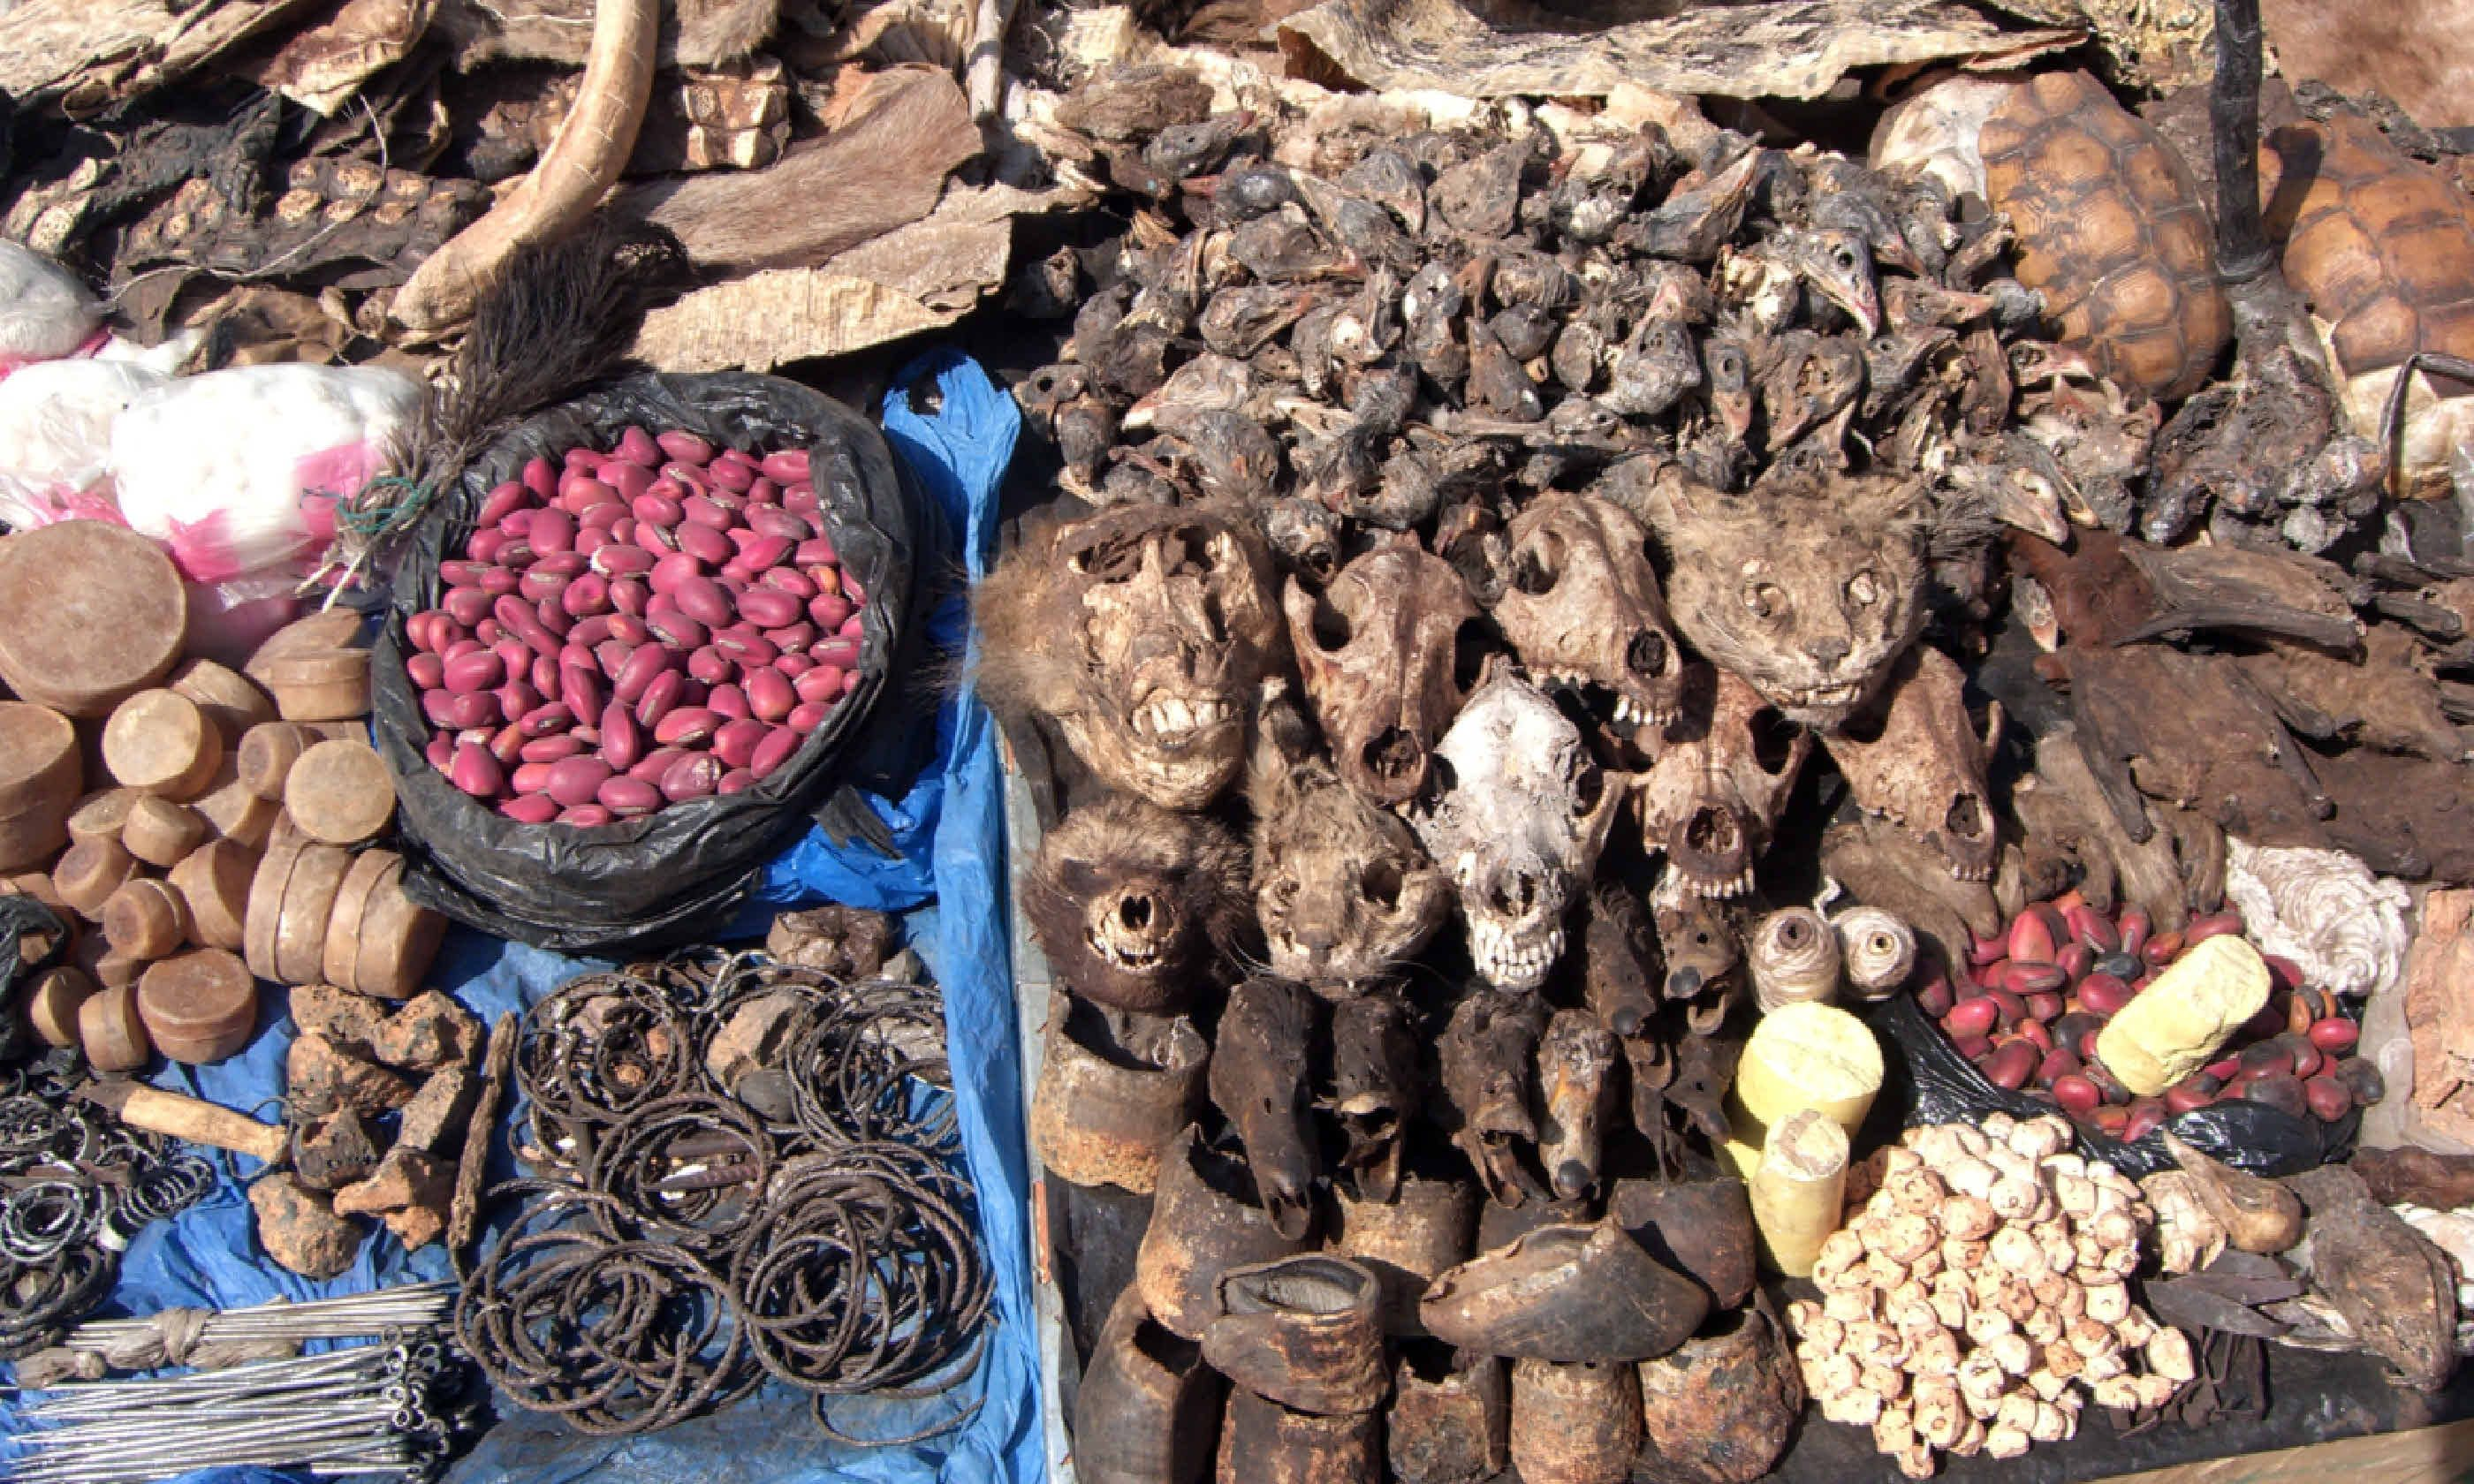 Goods for sale at West African fetish market (Shutterstock)